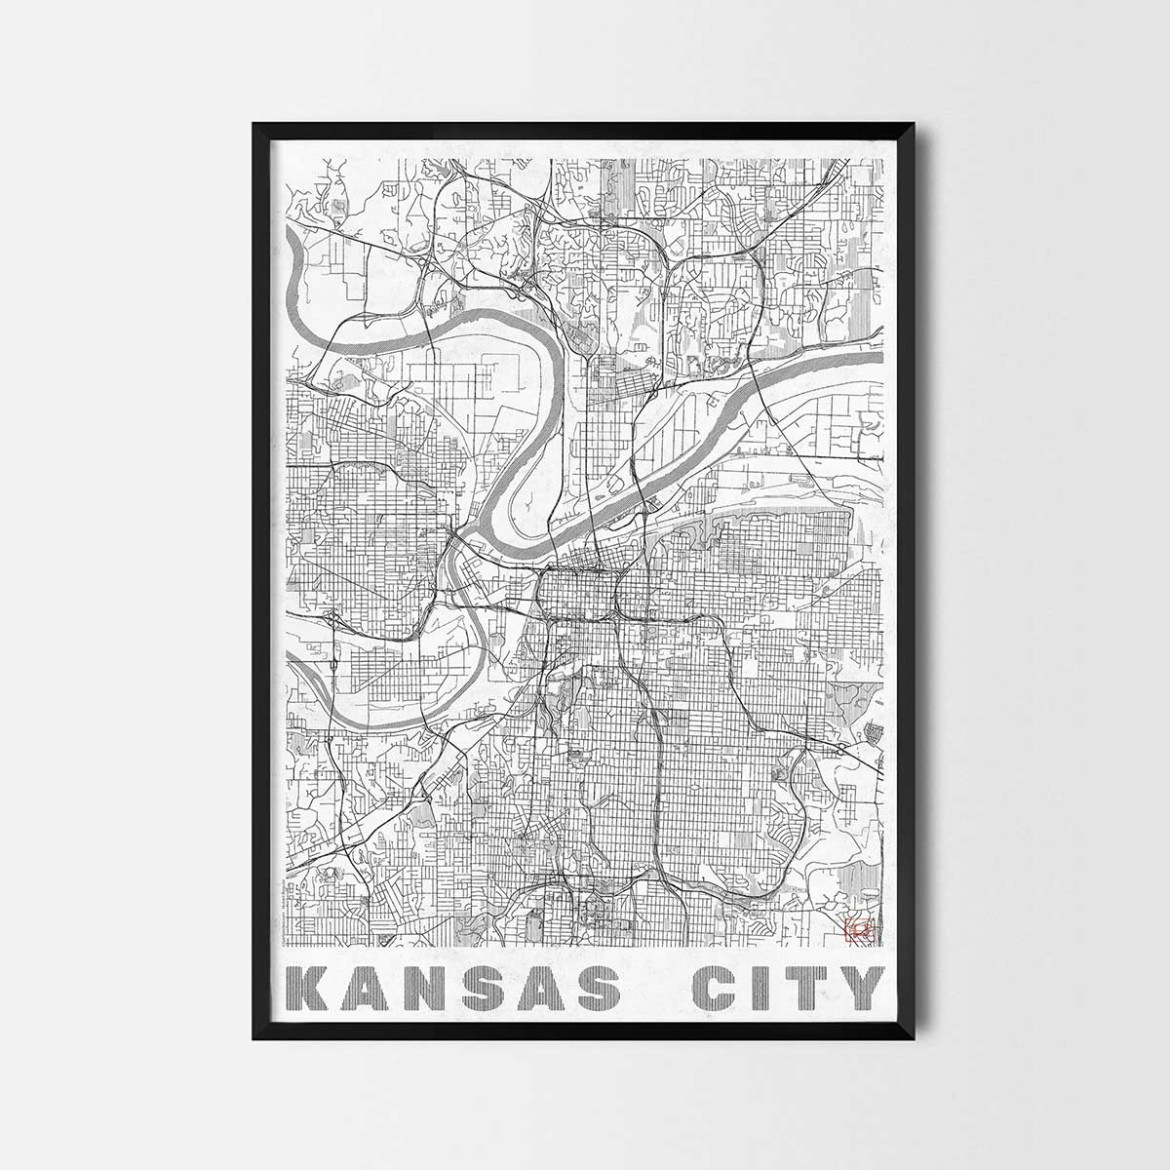 Kansas gift map art prints and posters home decor gifts for Home decor kansas city